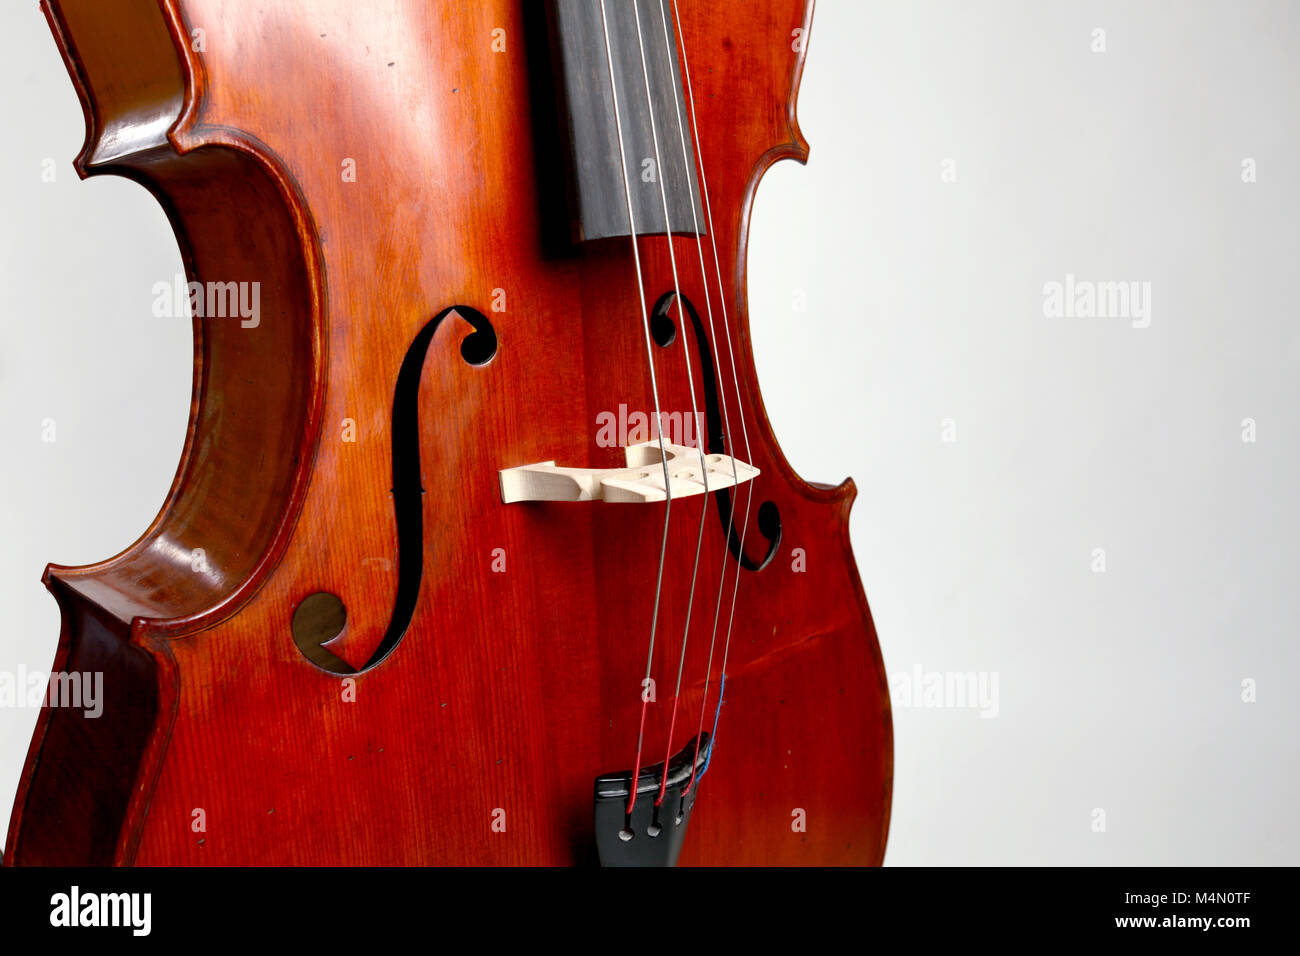 Old double bass c bout and belly on white background Stock Photo